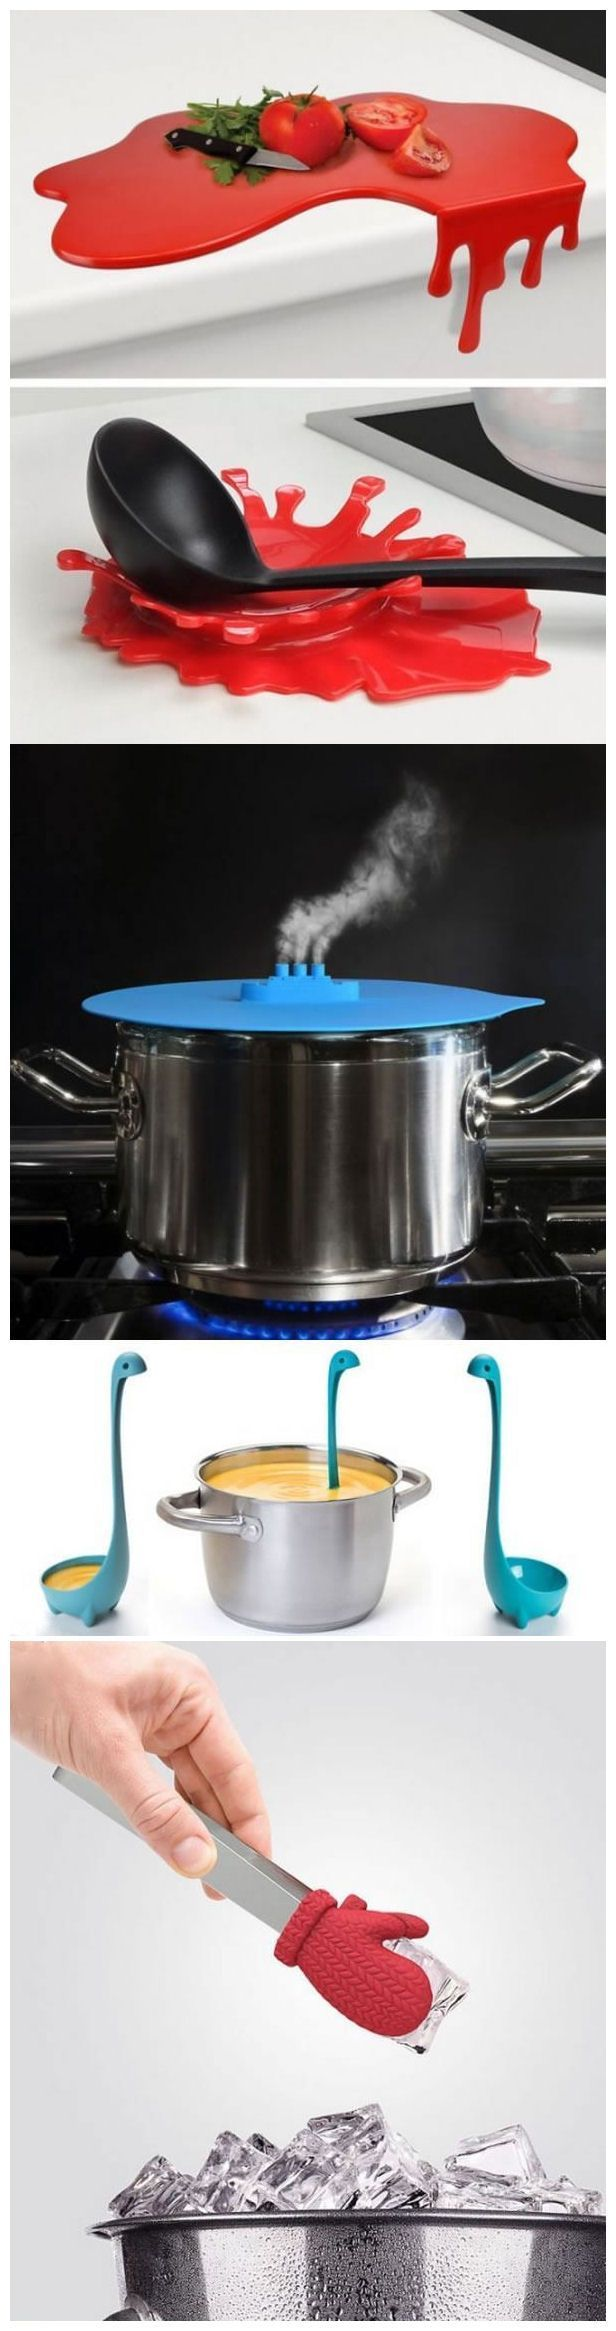 Cool & Clever Kitchen Gadgets ???                                                                                                                                                      More